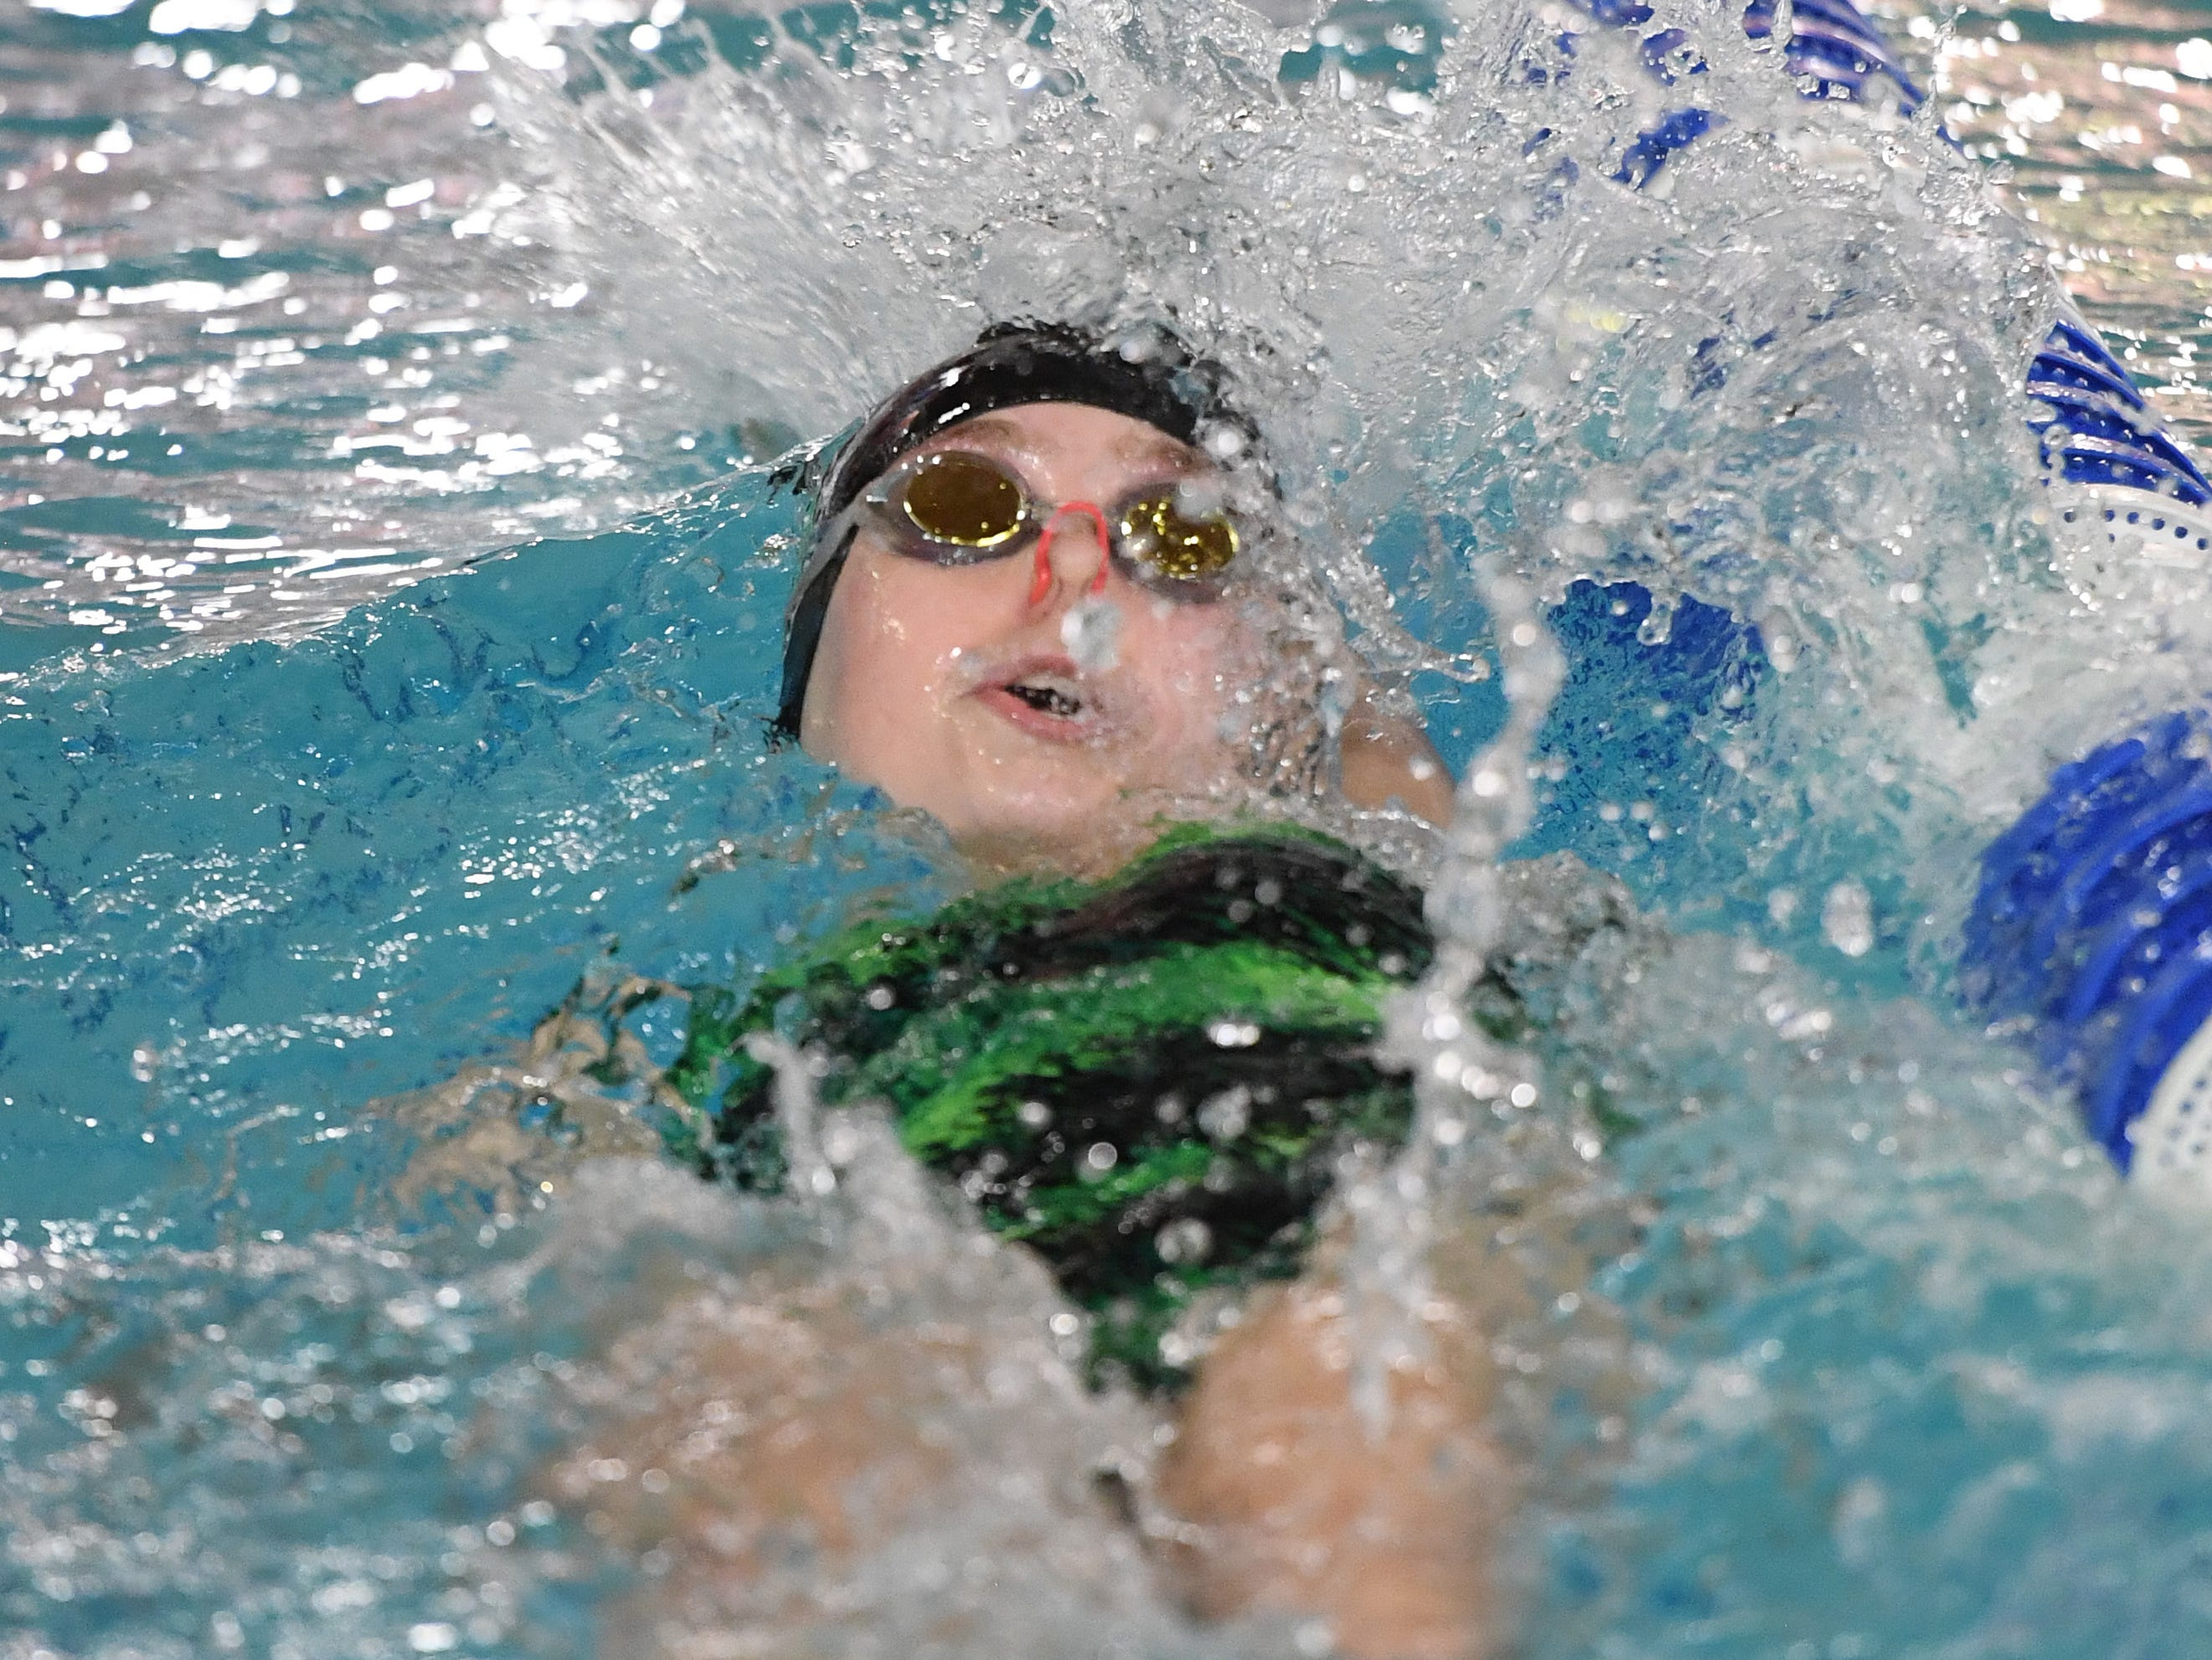 NJSIAA swimming sectional finals: Mountain Lakes vs Kinnelon in North I-C at Passaic County Technical Institute on Friday, February 15, 2019. Jackie Thompson, of Kinnelon, in the 100 Backstroke.